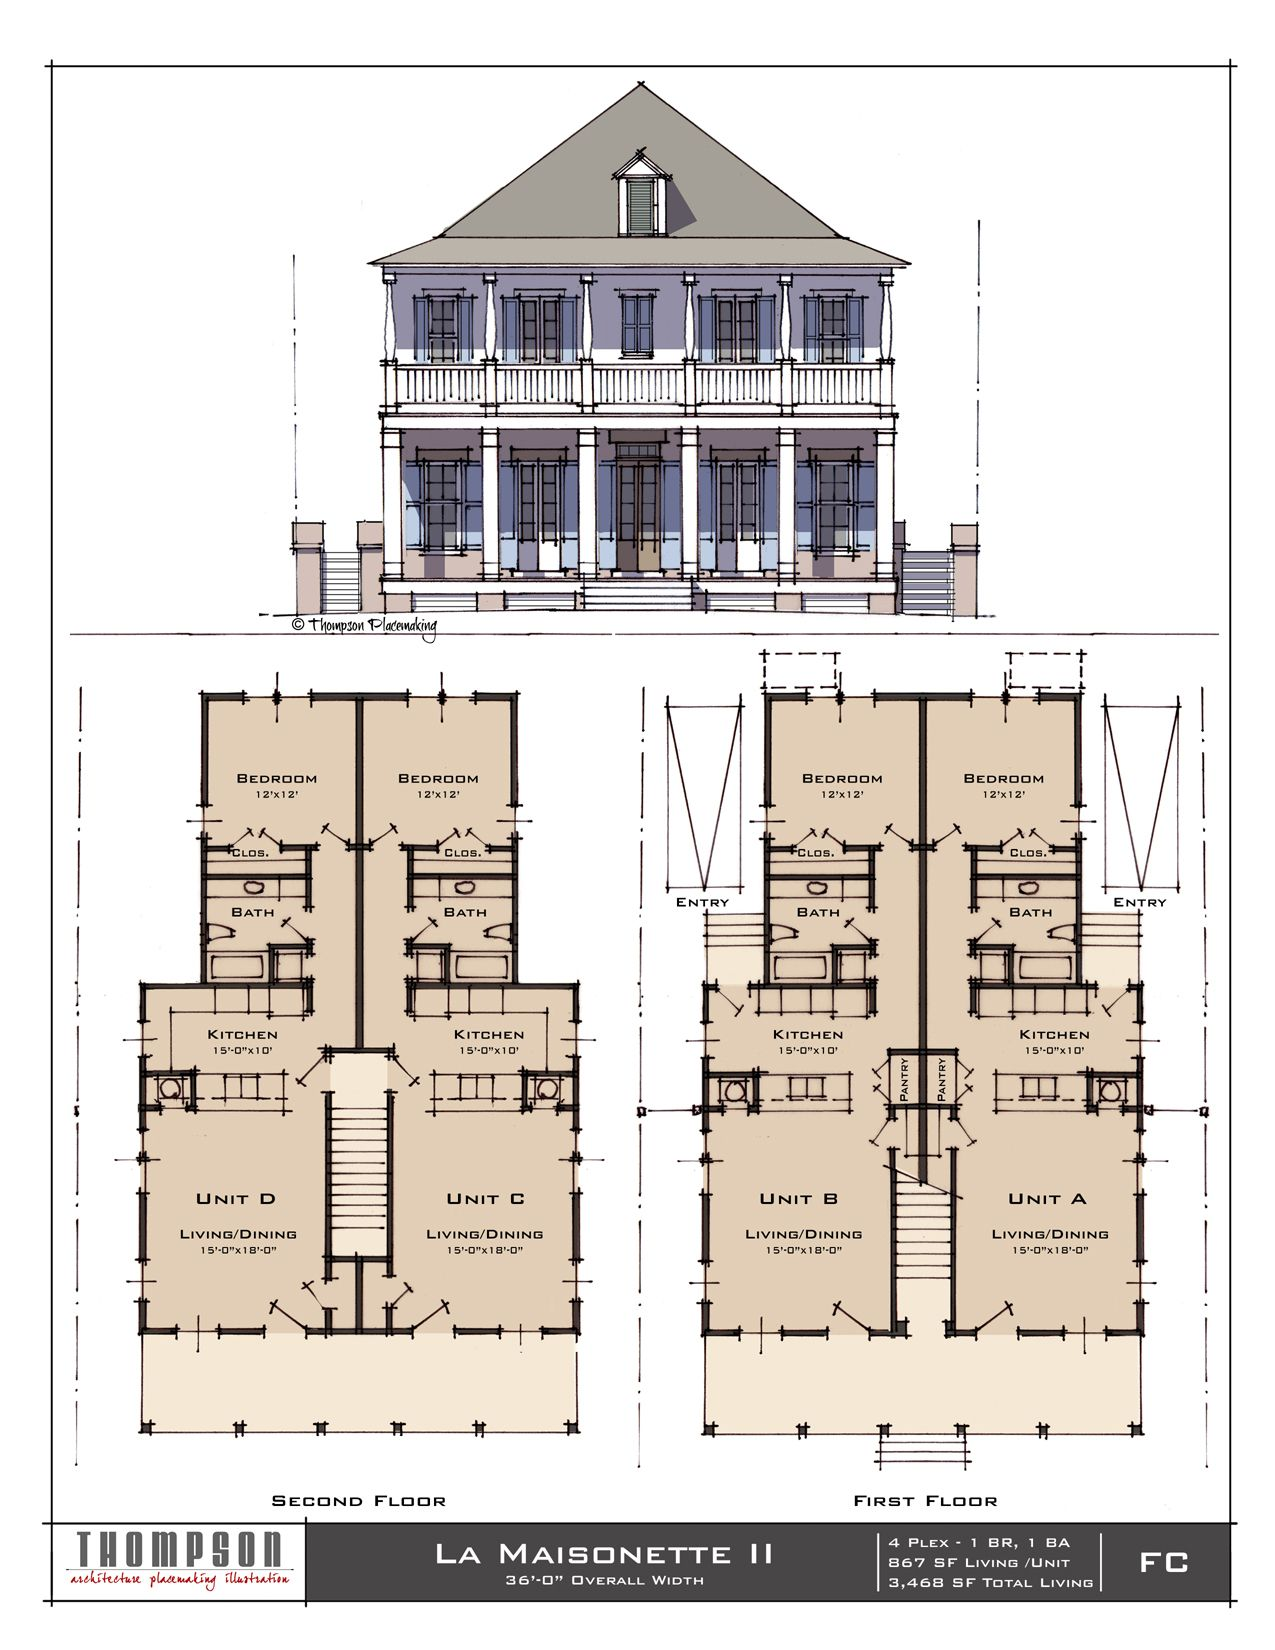 La Maisonette Ii 4 Plex Each Unit 1 Br 1 Bath 867 Sf Living 3 468 Sf Total Colonial House Plans Architectural Floor Plans Southern House Plans